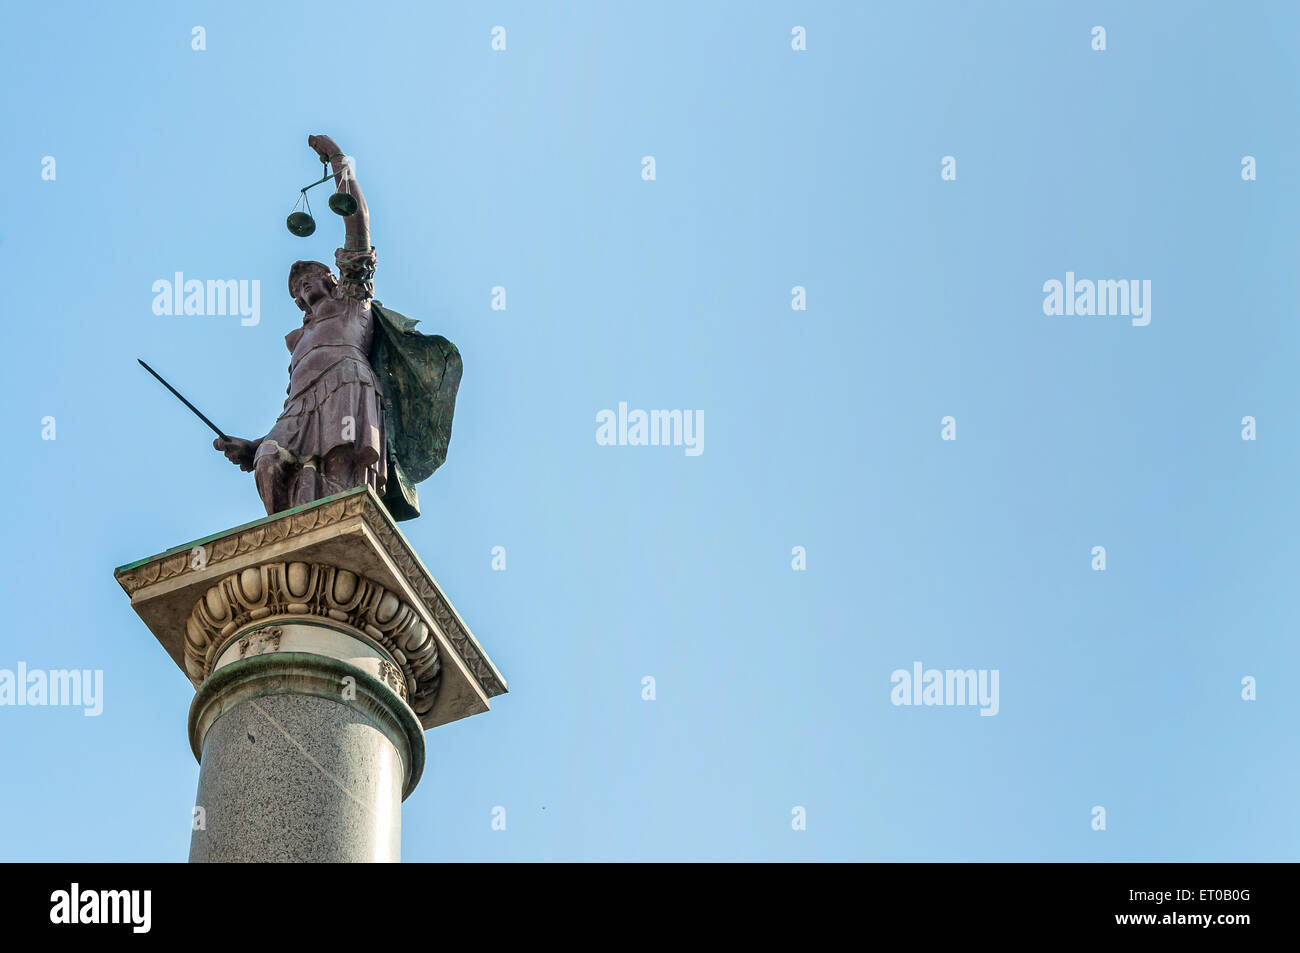 ancient Roman column with justice statue in Florence, Italy - Stock Image